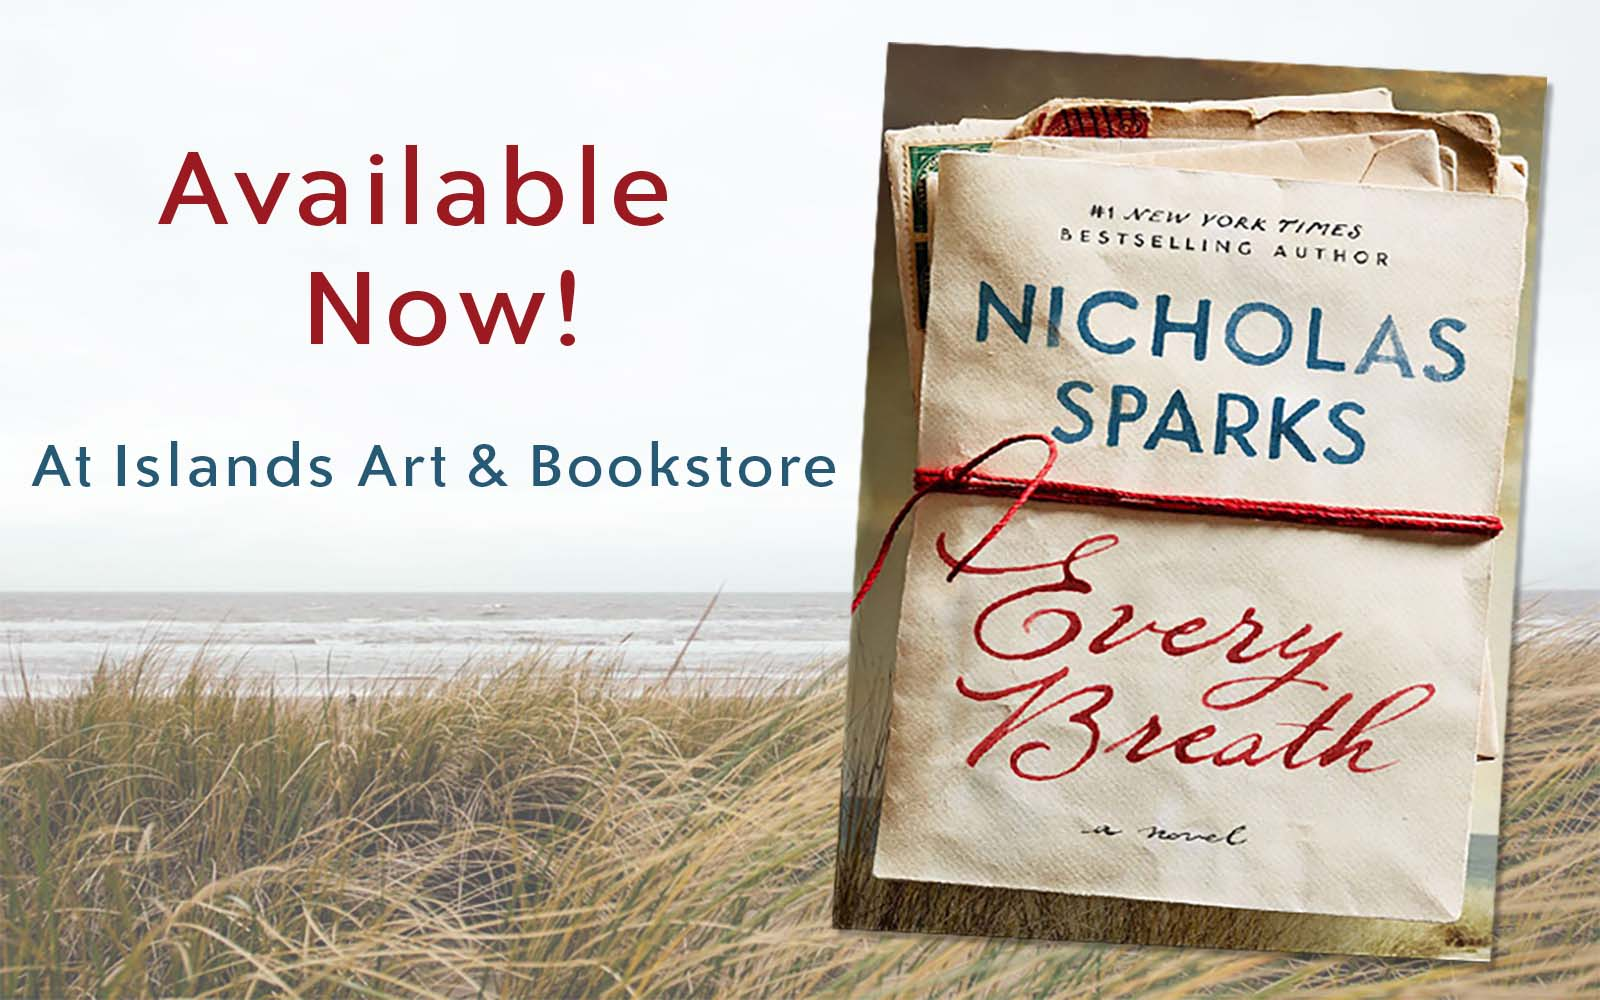 Nicholas Sparks Book Set in Sunset Beach Available for Pre-Order